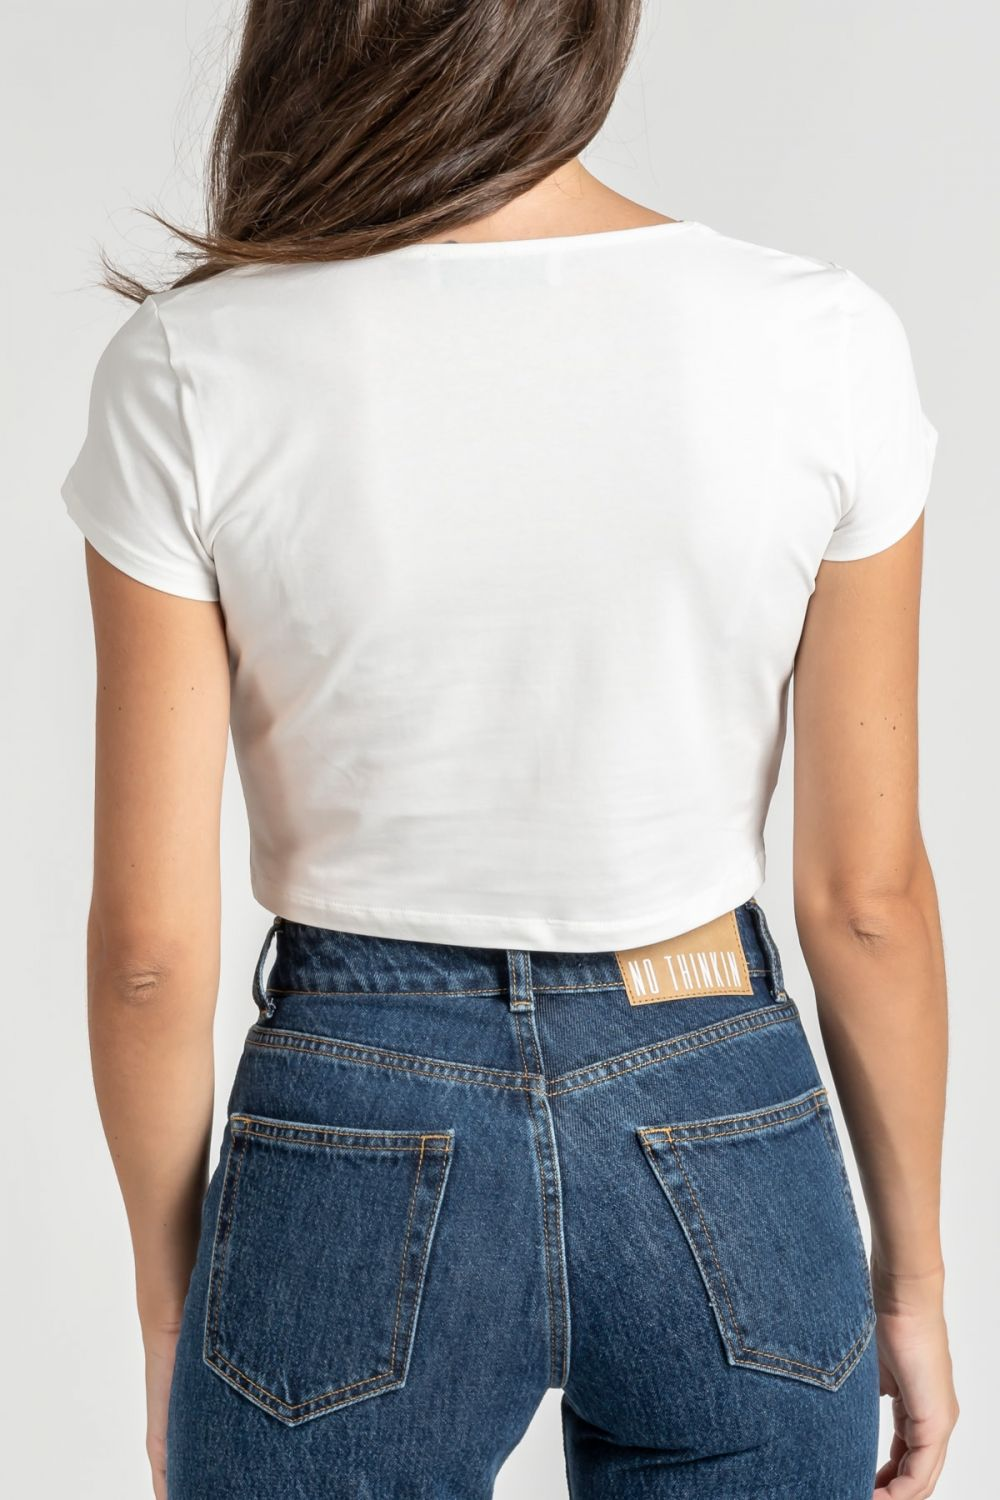 Cropped cut out white top